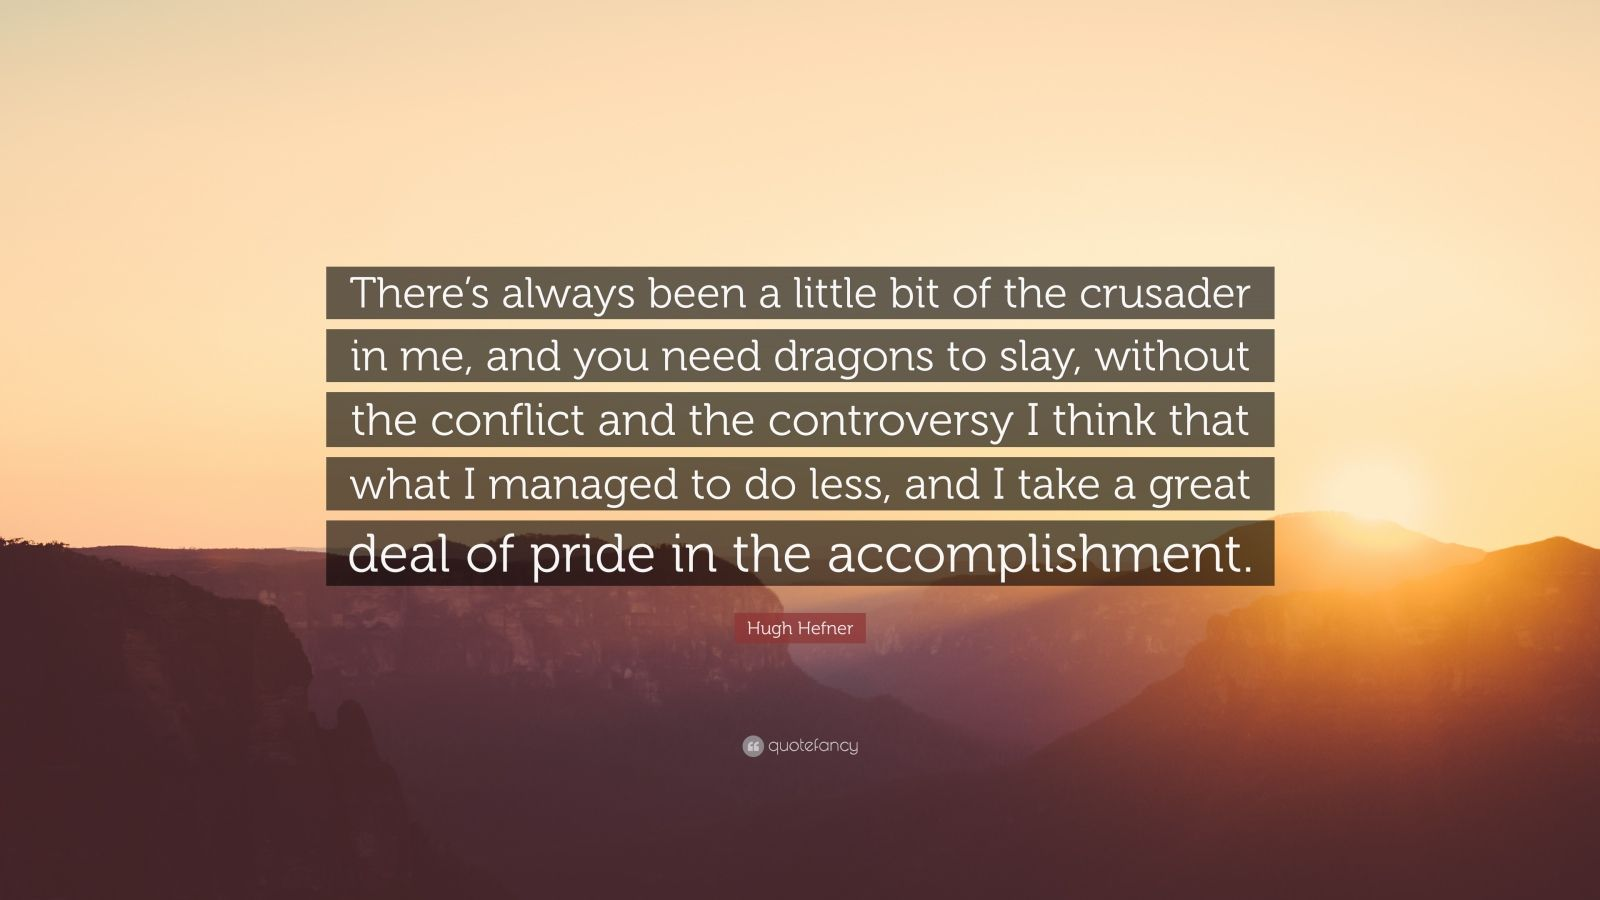 """Hugh Hefner Quote: """"There's always been a little bit of the crusader in me, and you need dragons to slay, without the conflict and the controversy I think that what I managed to do less, and I take a great deal of pride in the accomplishment."""""""